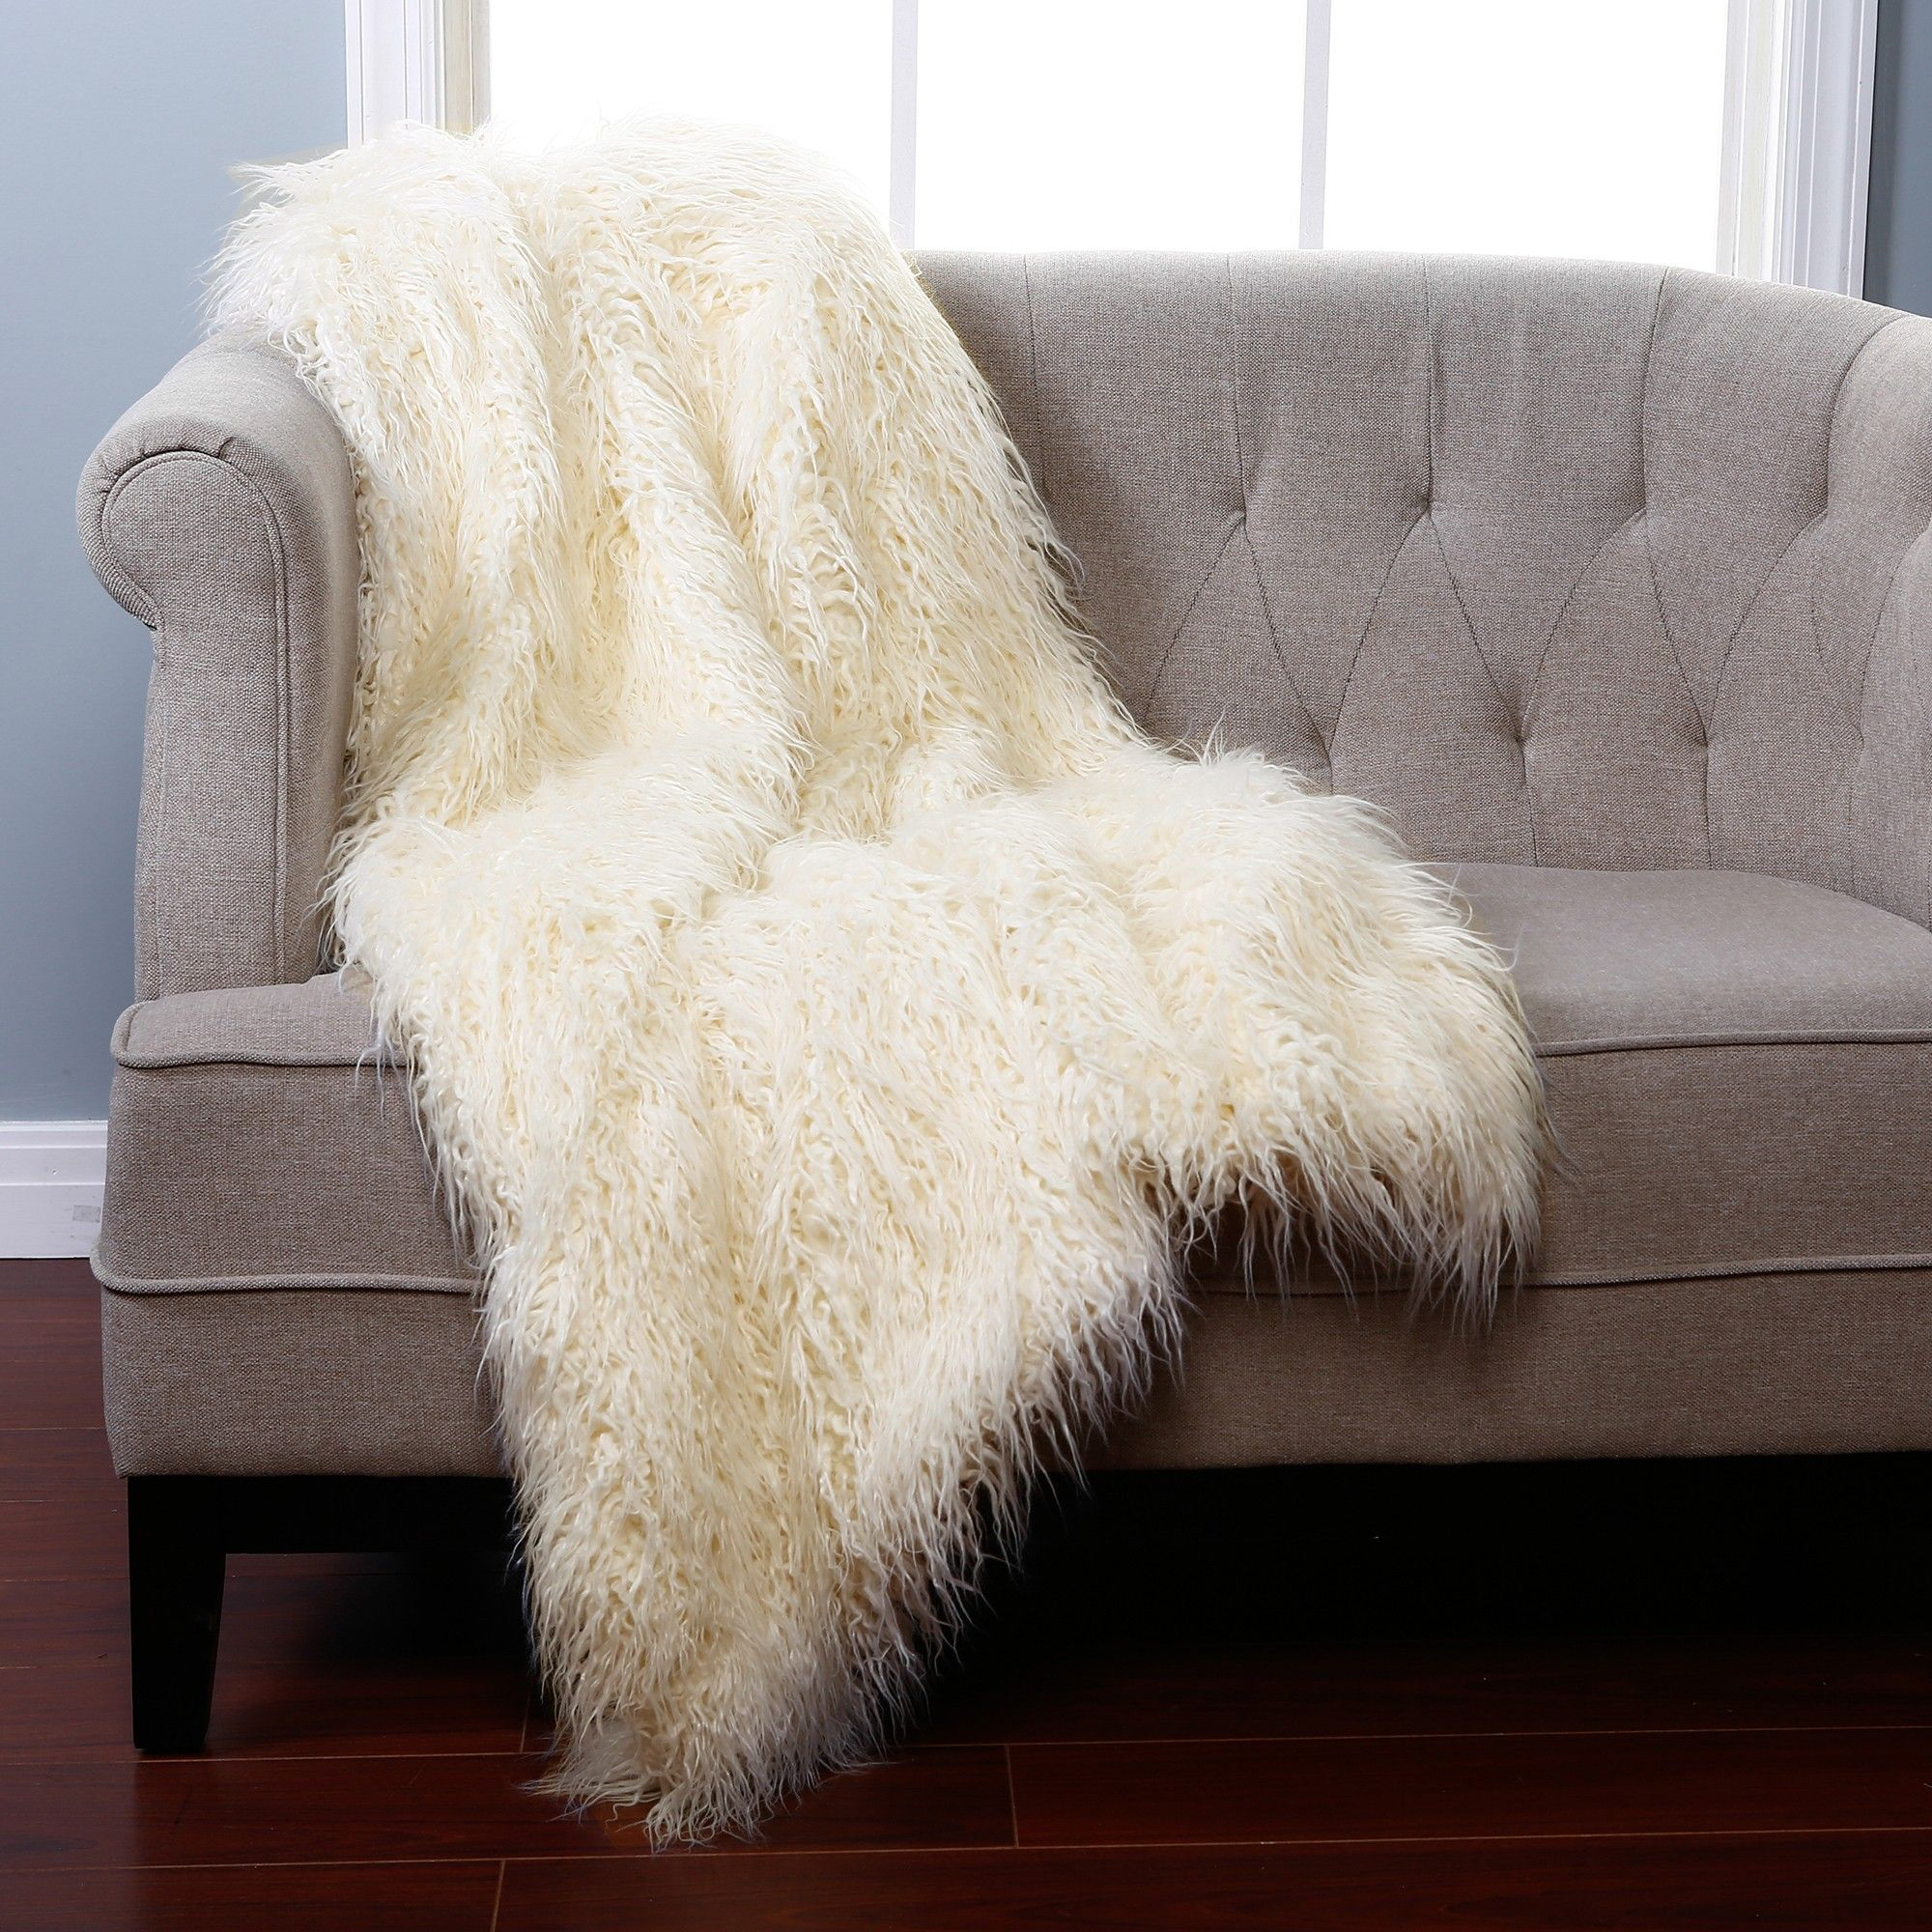 Sheepskin Throw Blanket Google Search White Faux Fur